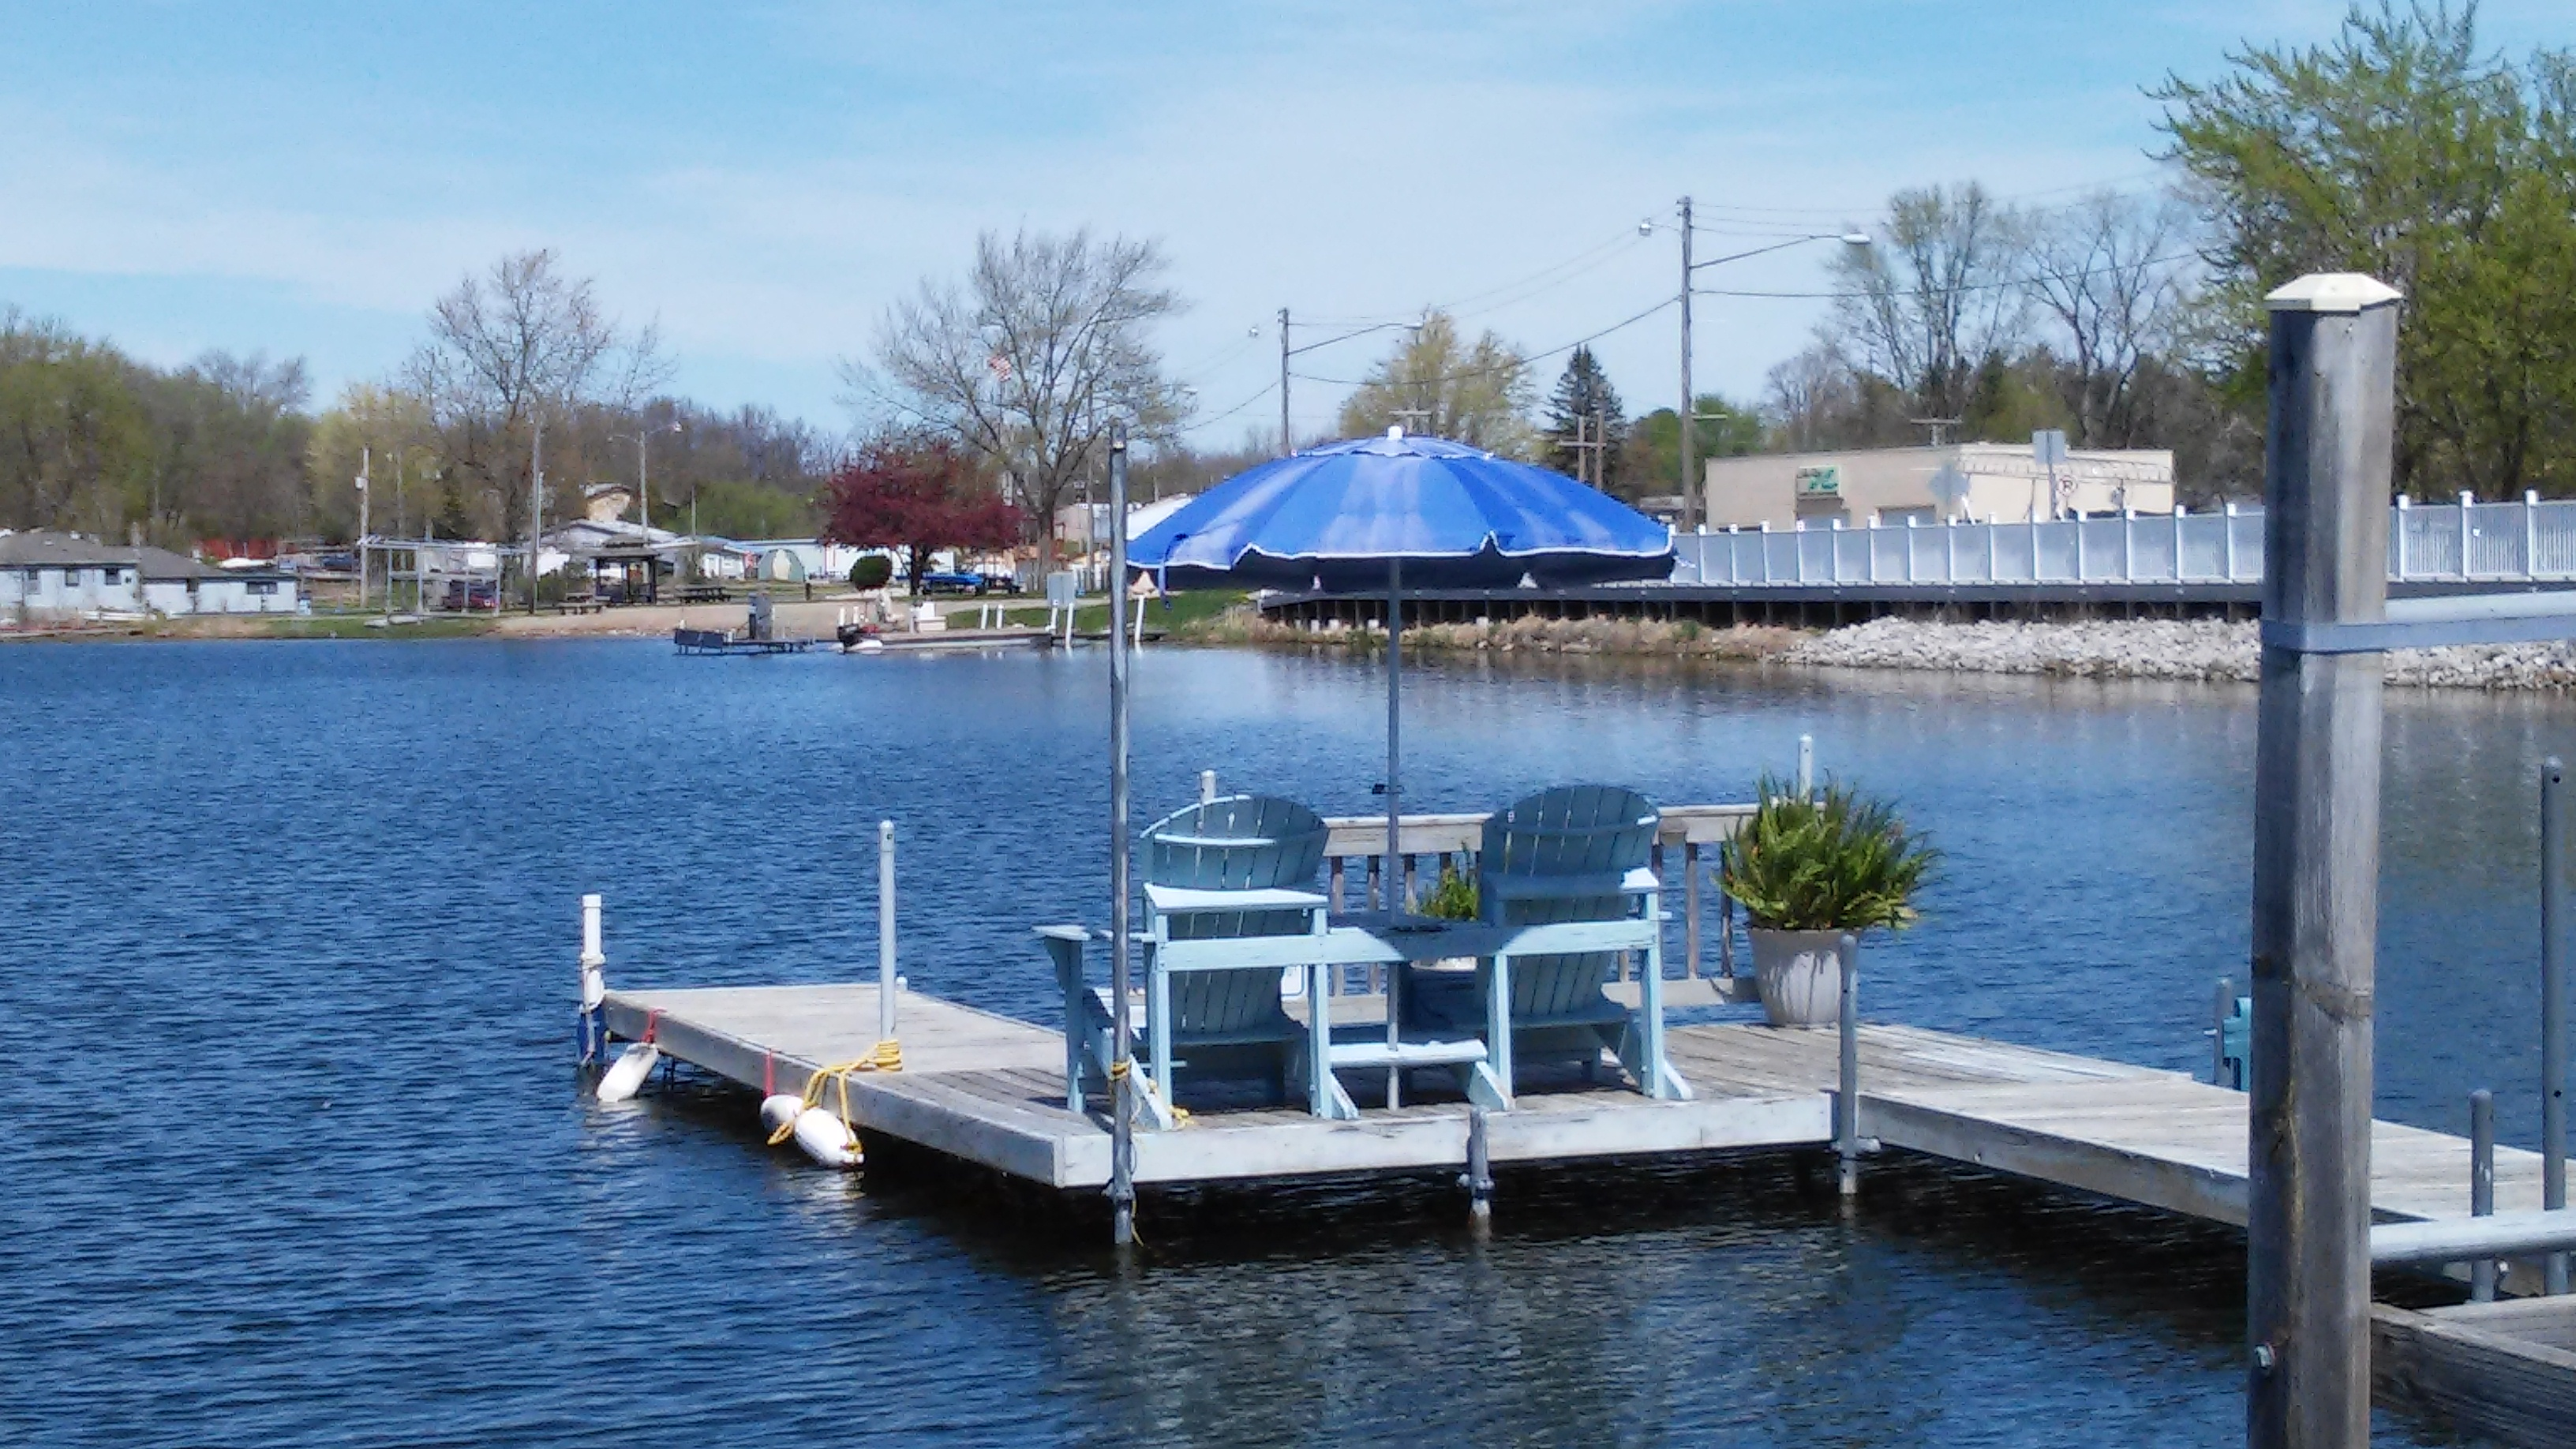 1 Bedroom Apt on Hamilton Lake w/ pier - 1 Bed, Upper Downtown, Lake View and Private Pier, Lots of Amenities, washer & Dryer, steps to the beach, walking distance to all downtown businesses, restaurants, grocery, bank, post office, dollar store, bait shop, golf cart friendly community, golf course less than 1 mile, park w/ tennis and basketball courts, miles of beautiful walking trails, farmers market